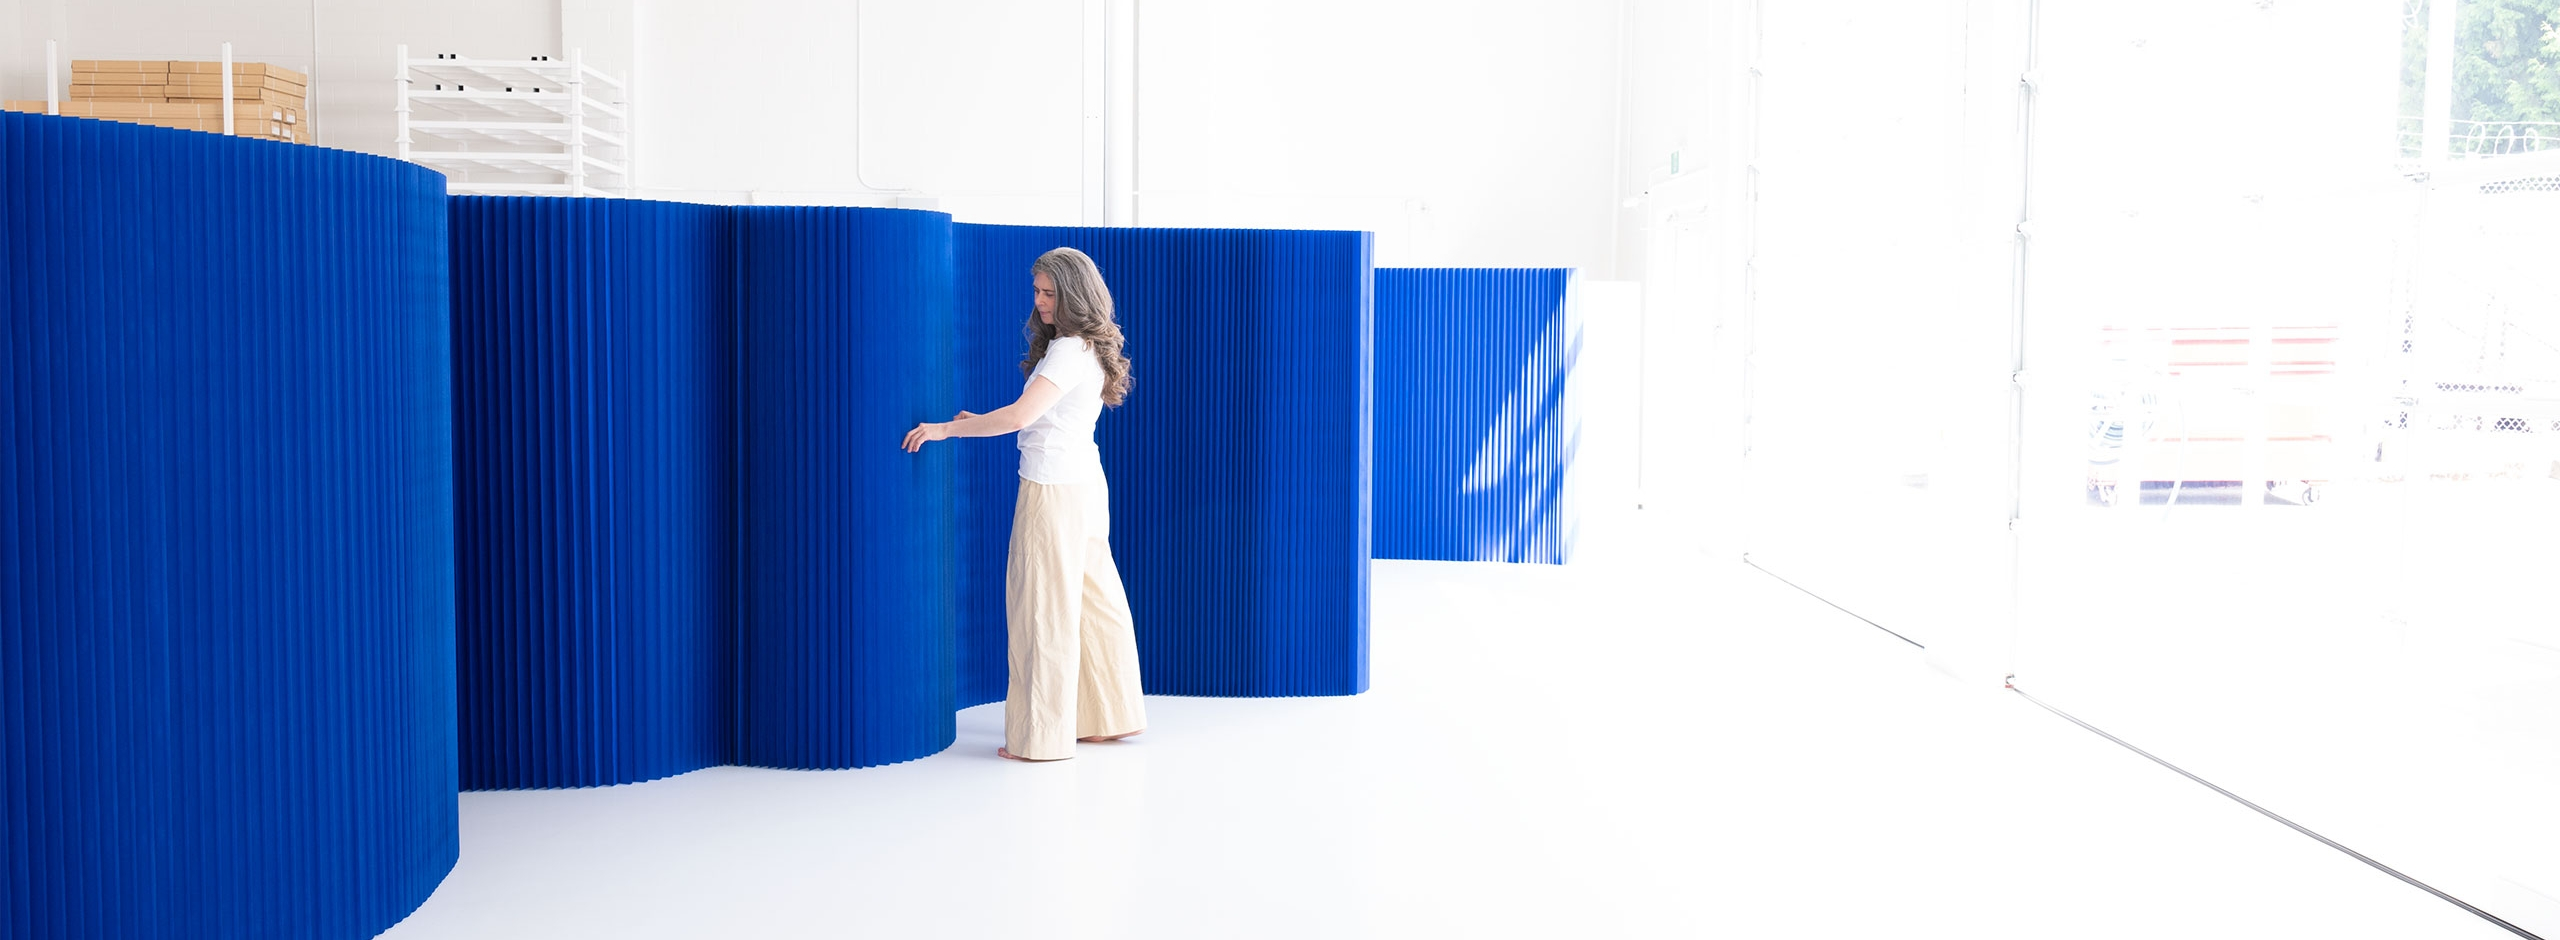 This blue wall is a a flexible room divider made from paper. As a dramatic backdrop for special events or daily life these movable partitions can be made into any shape and easily flat pack for storage and portability.